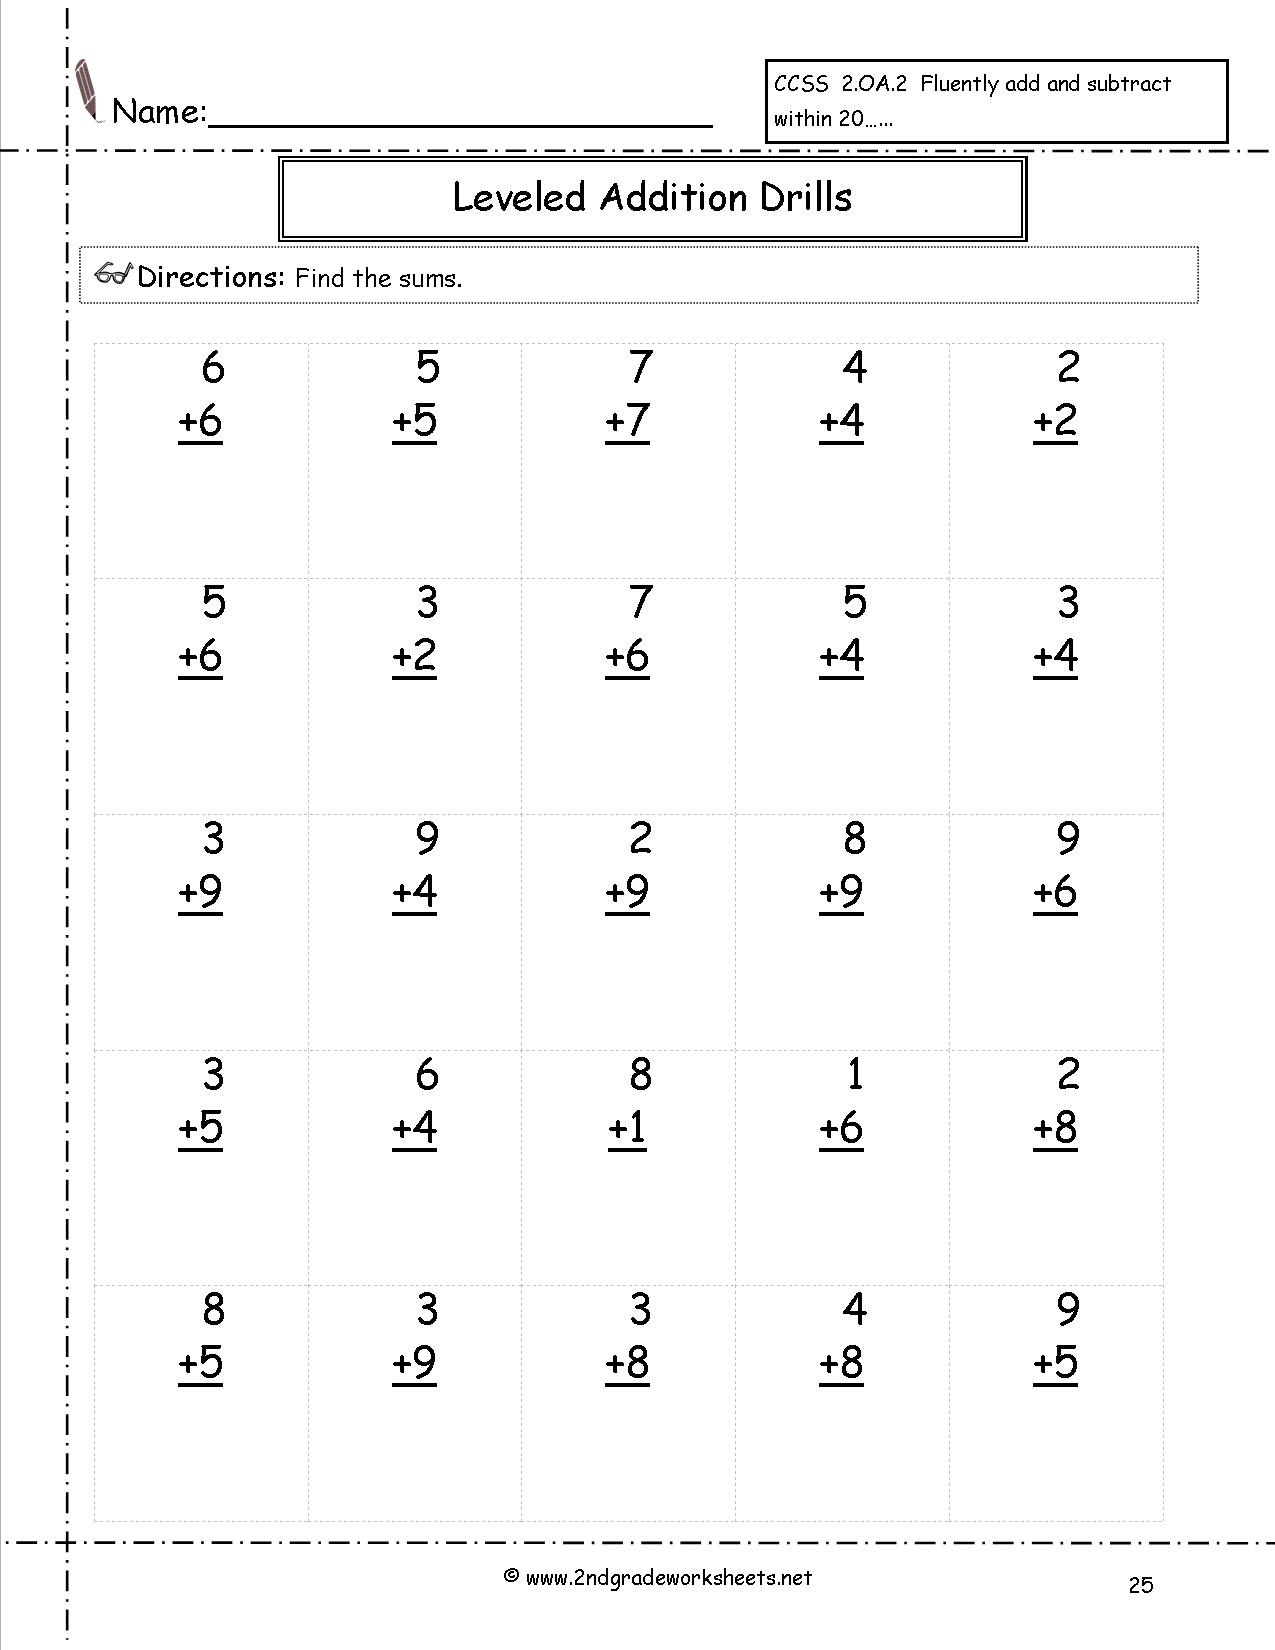 Free Math Worksheets And Printouts - Free Printable Math Worksheets For 2Nd Grade